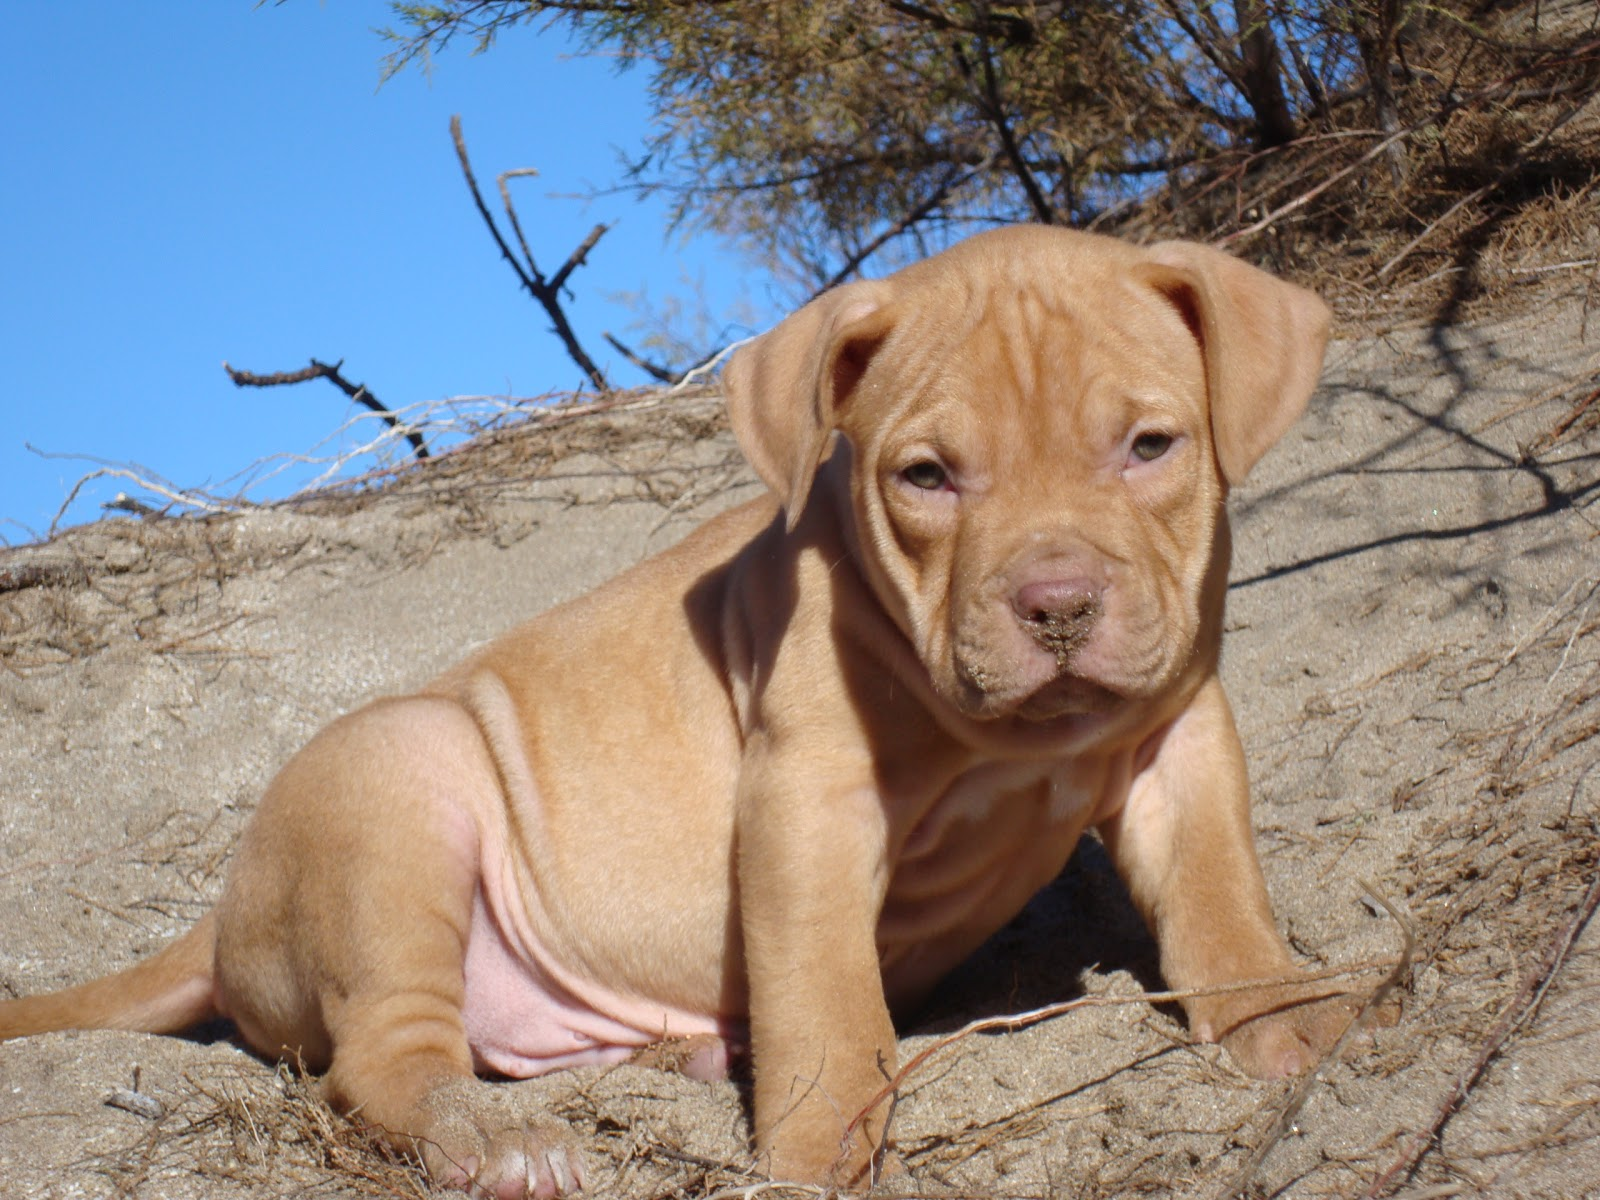 Big head badass pitbulls Pinterest Dog, Terrier and Animal Pictures of big head pitbulls